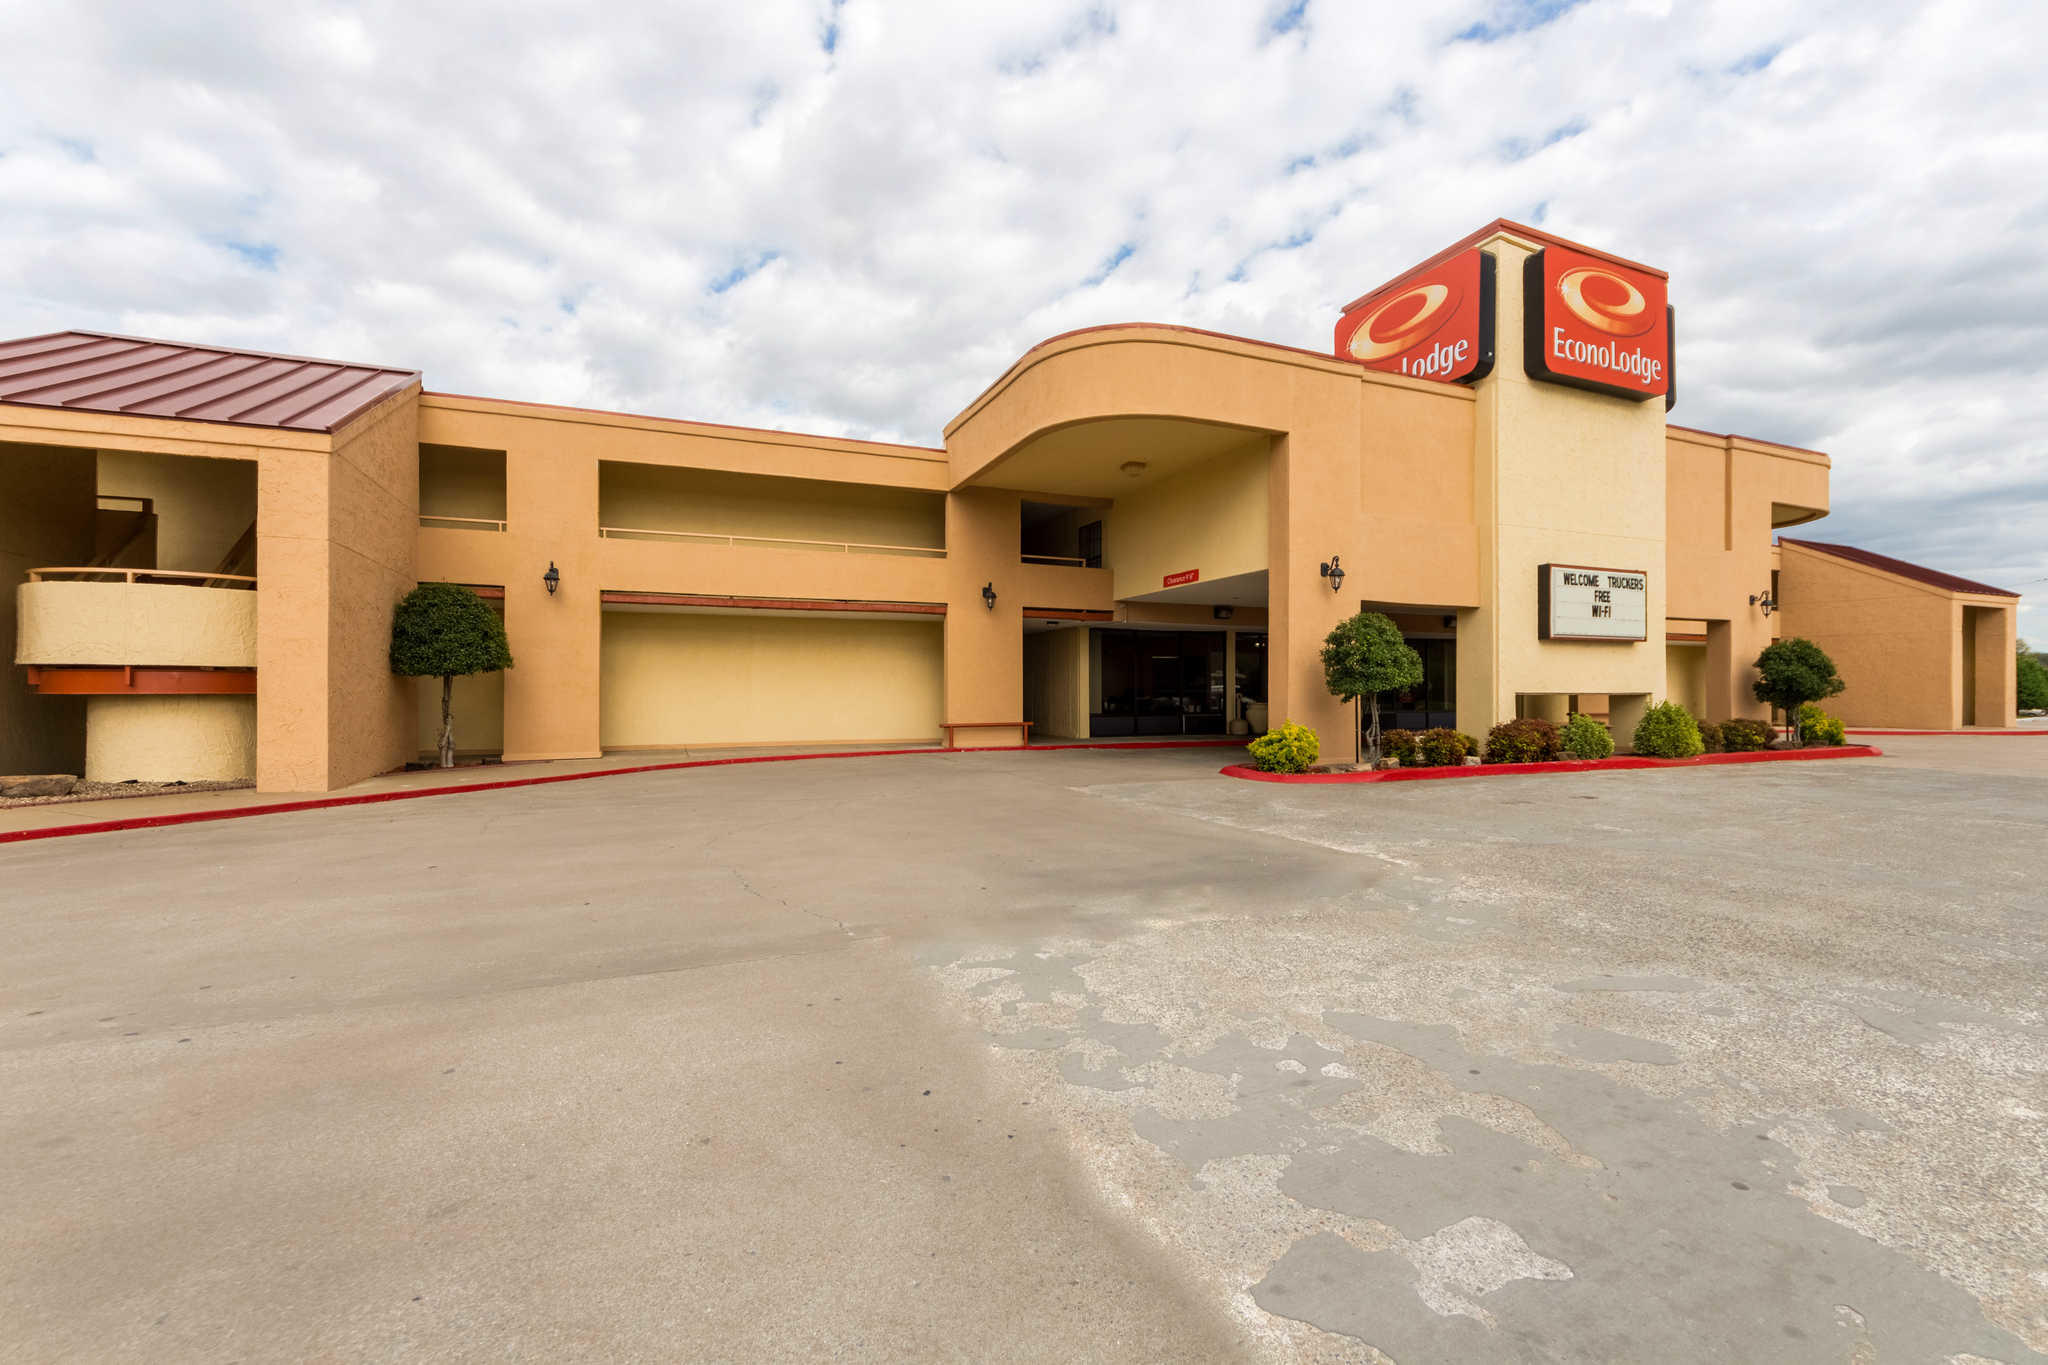 Econo lodge fayetteville arkansas ar for Affordable pools of fayetteville